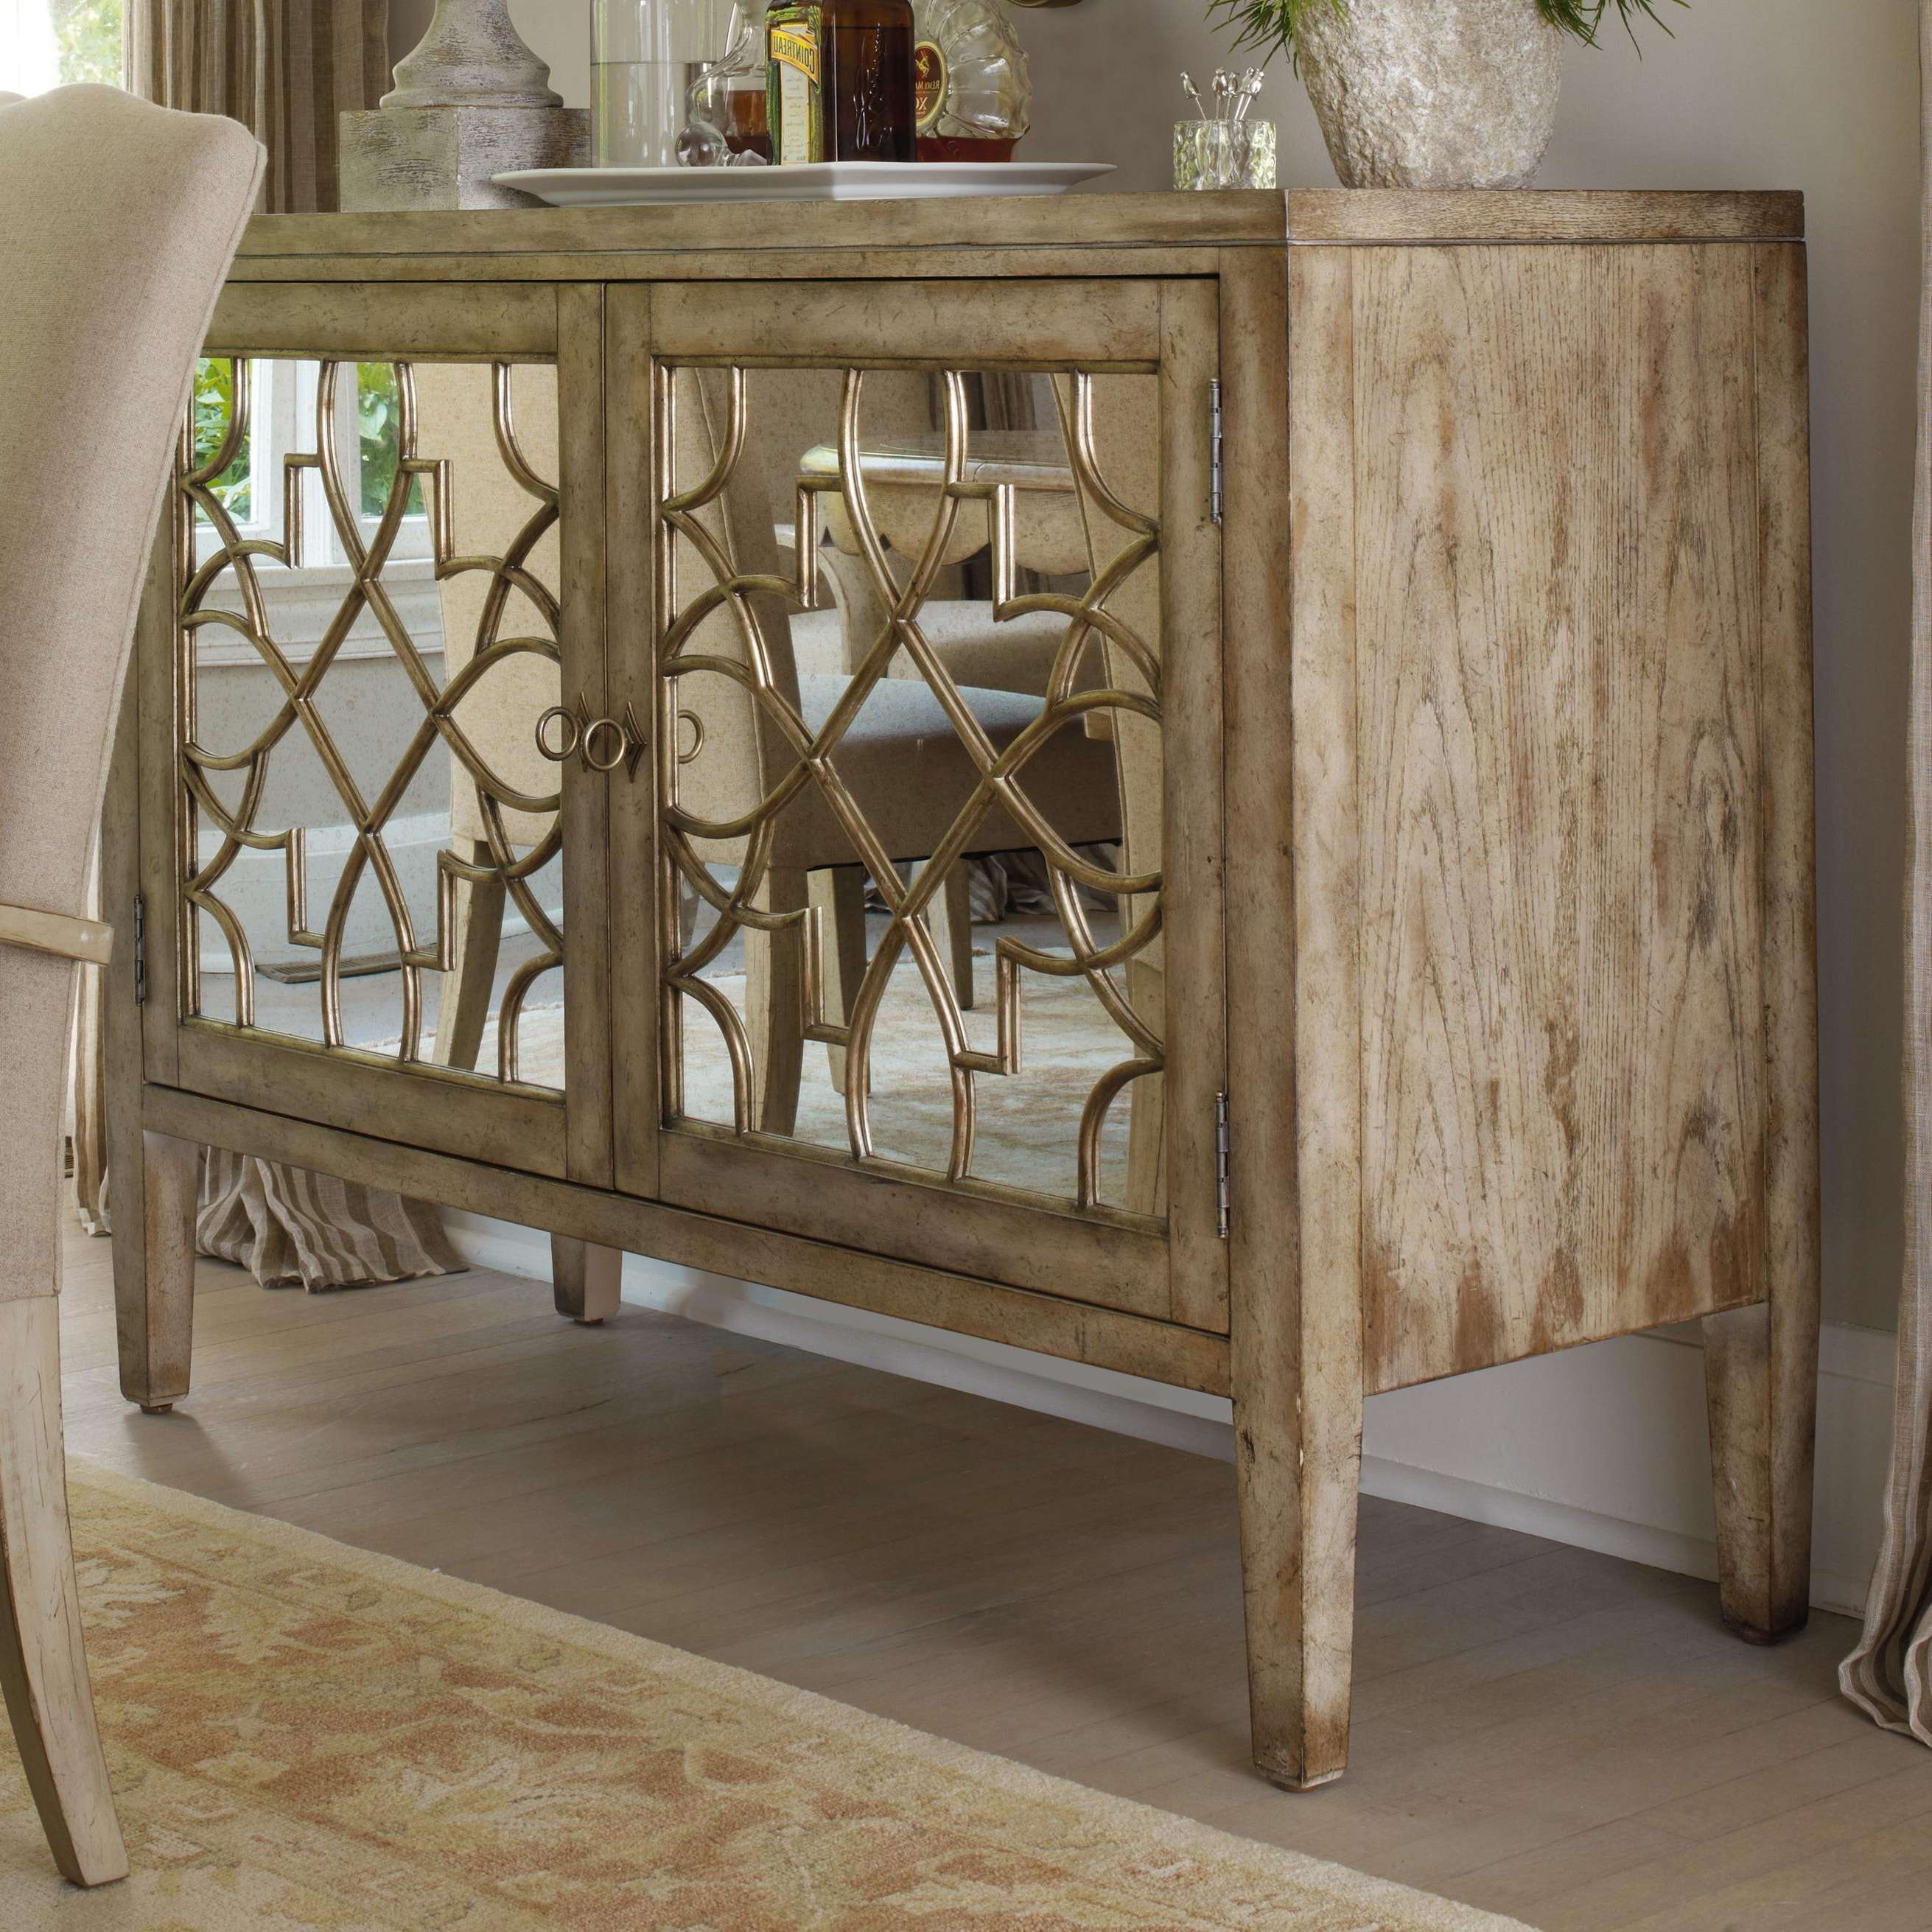 Hooker Furniture Sanctuary Two Door Mirrored Console – Ahfa With Regard To Mirrored Buffet Sideboards (View 10 of 20)